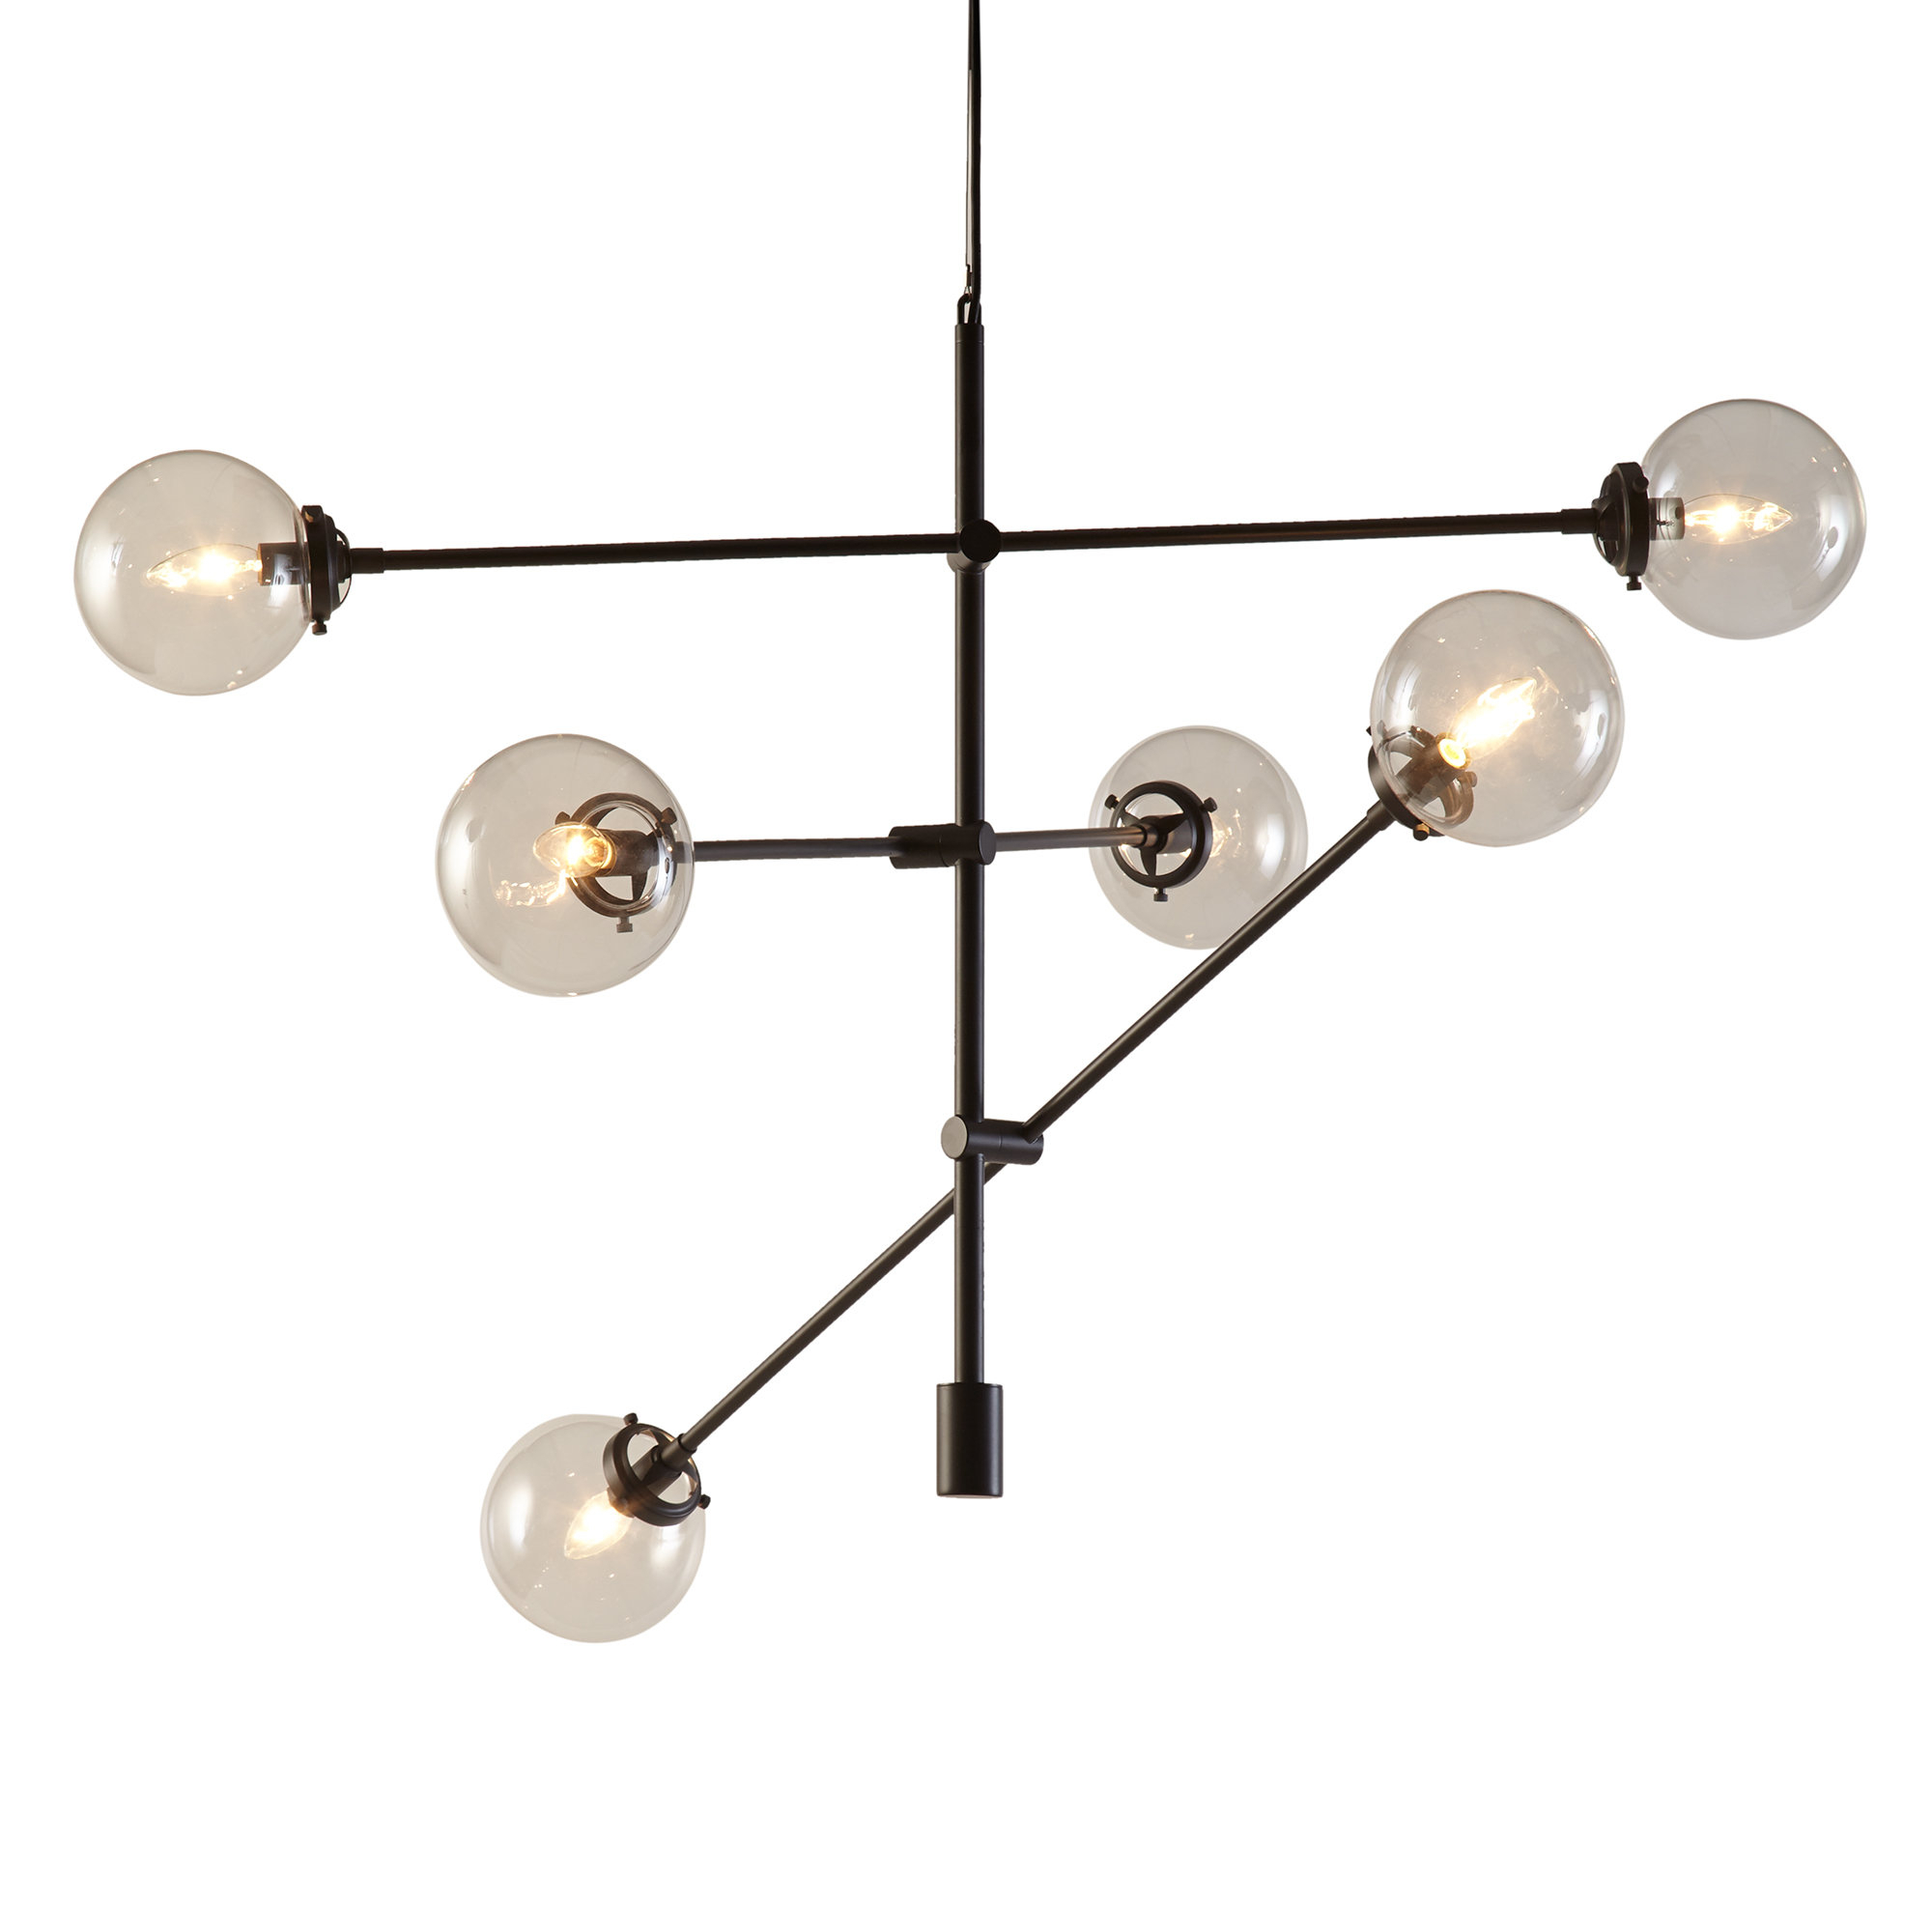 Bailey Antique 6 Light Sputnik Chandelier Within Eladia 6 Light Sputnik Chandeliers (View 7 of 30)